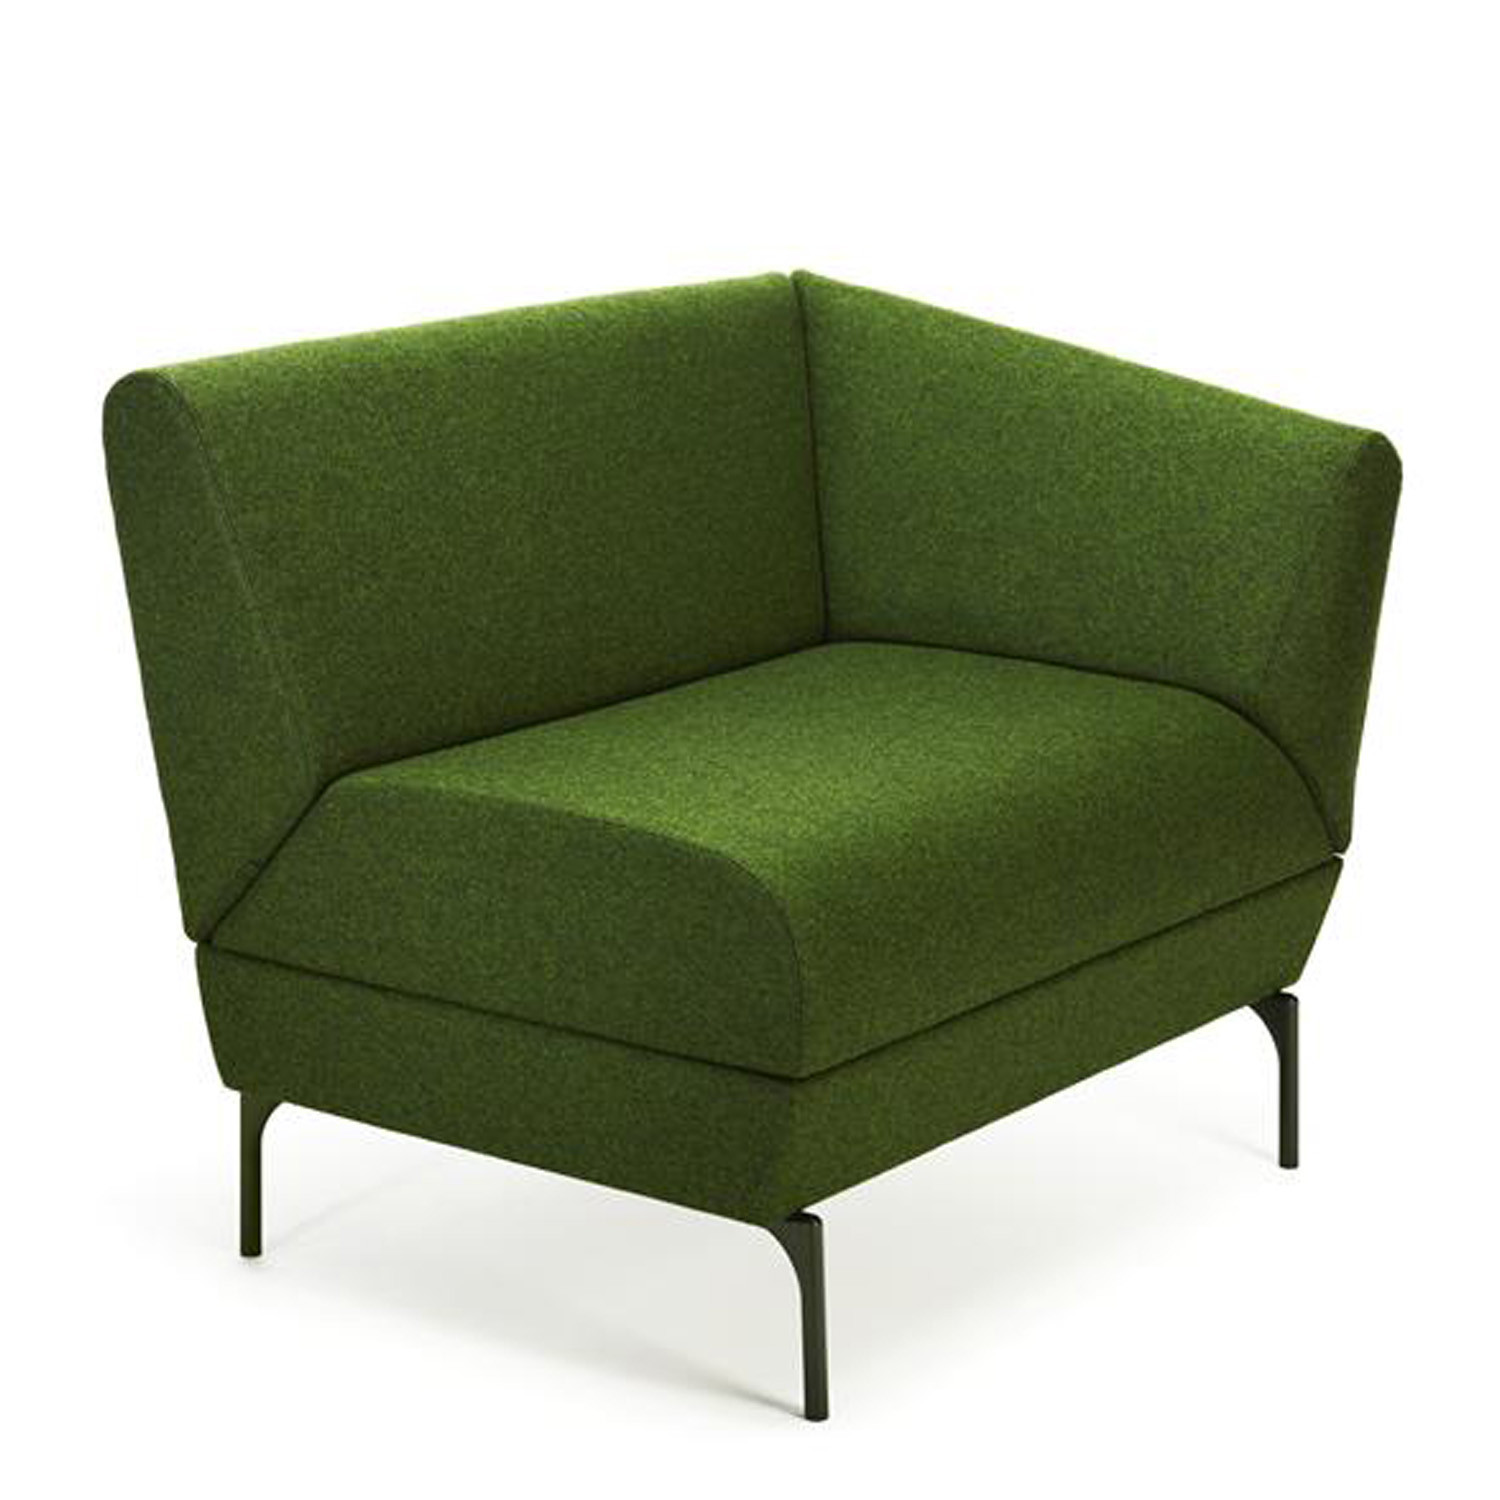 Addit Sofa